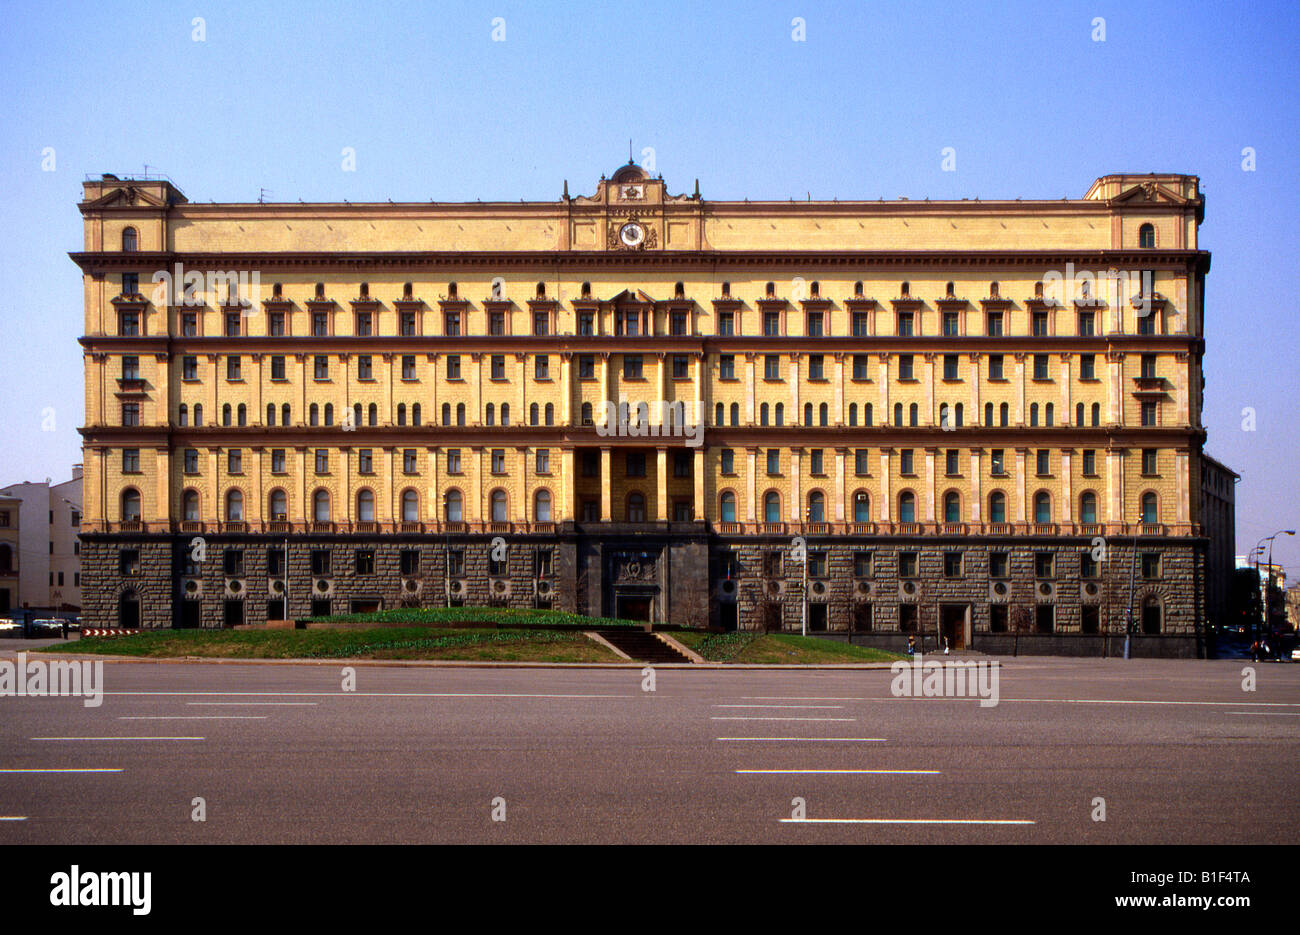 FSB former KGB headquarters building in Moscow Russia - Stock Image